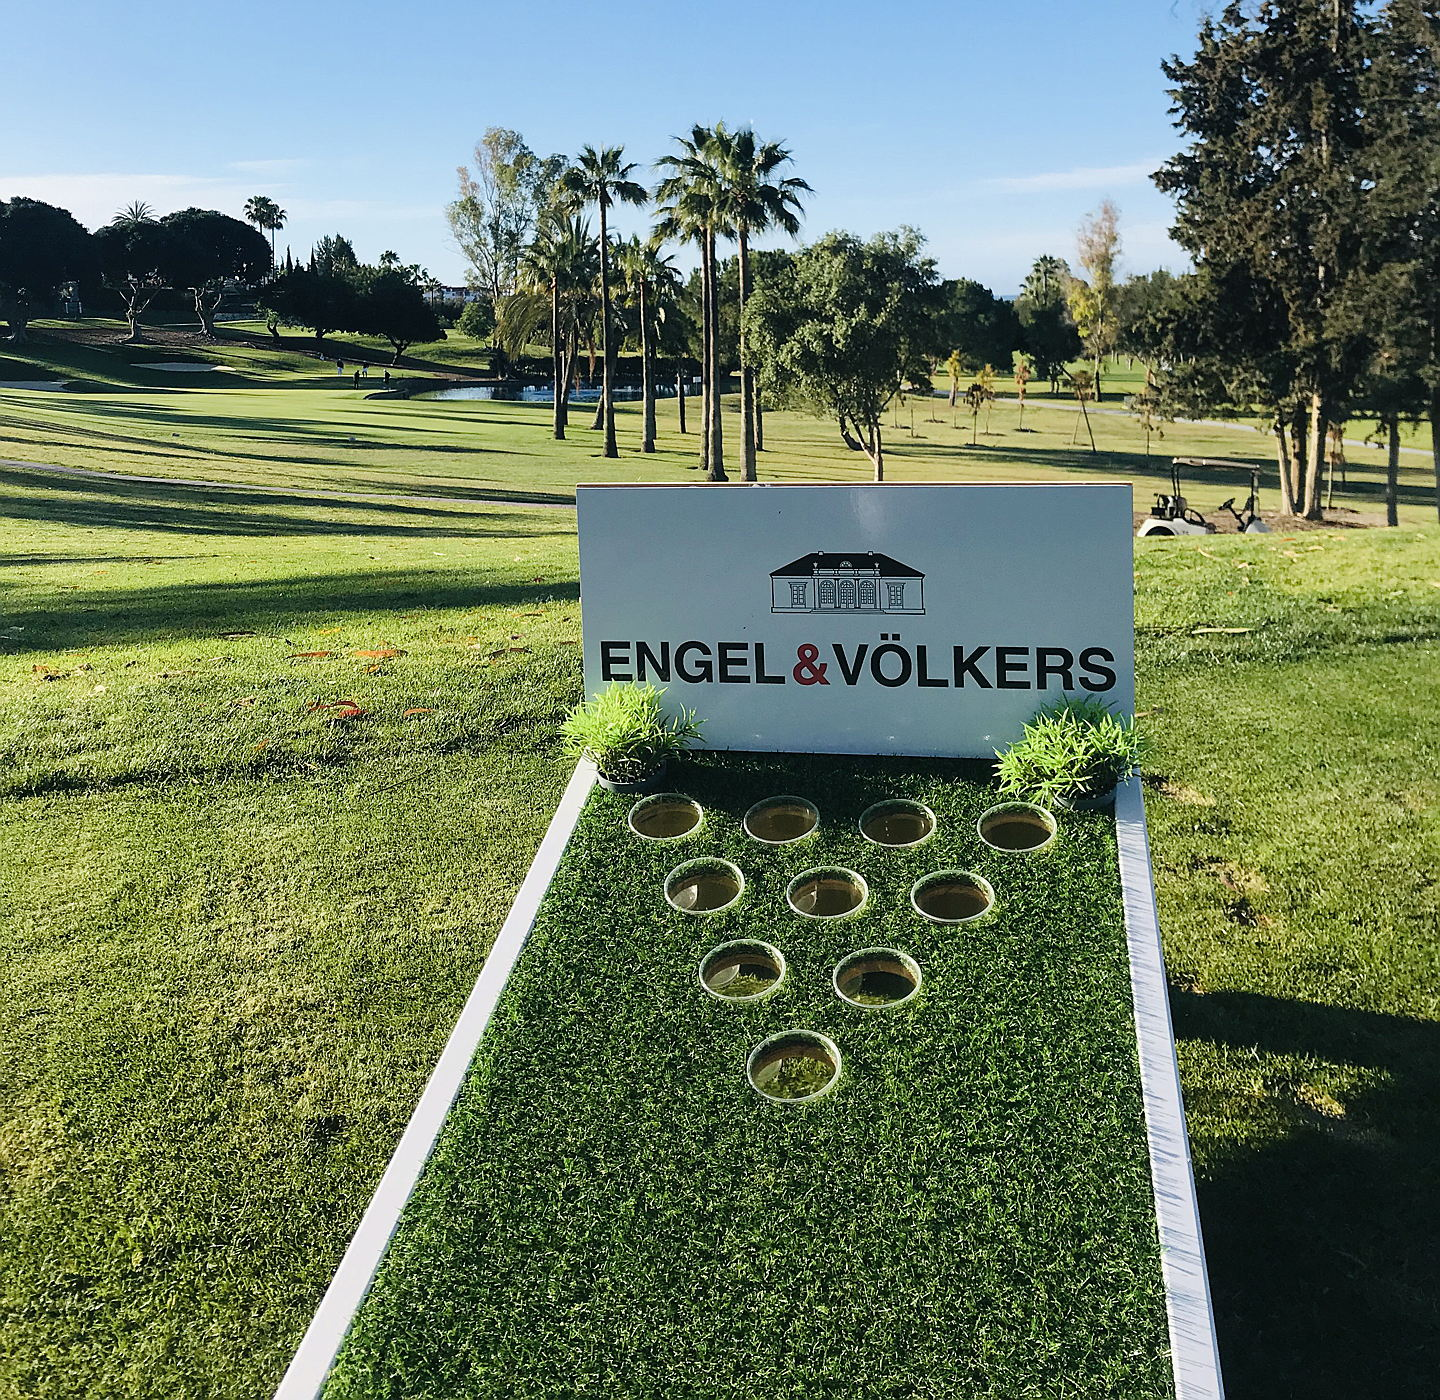 Marbella - Engel & Völkers Activity